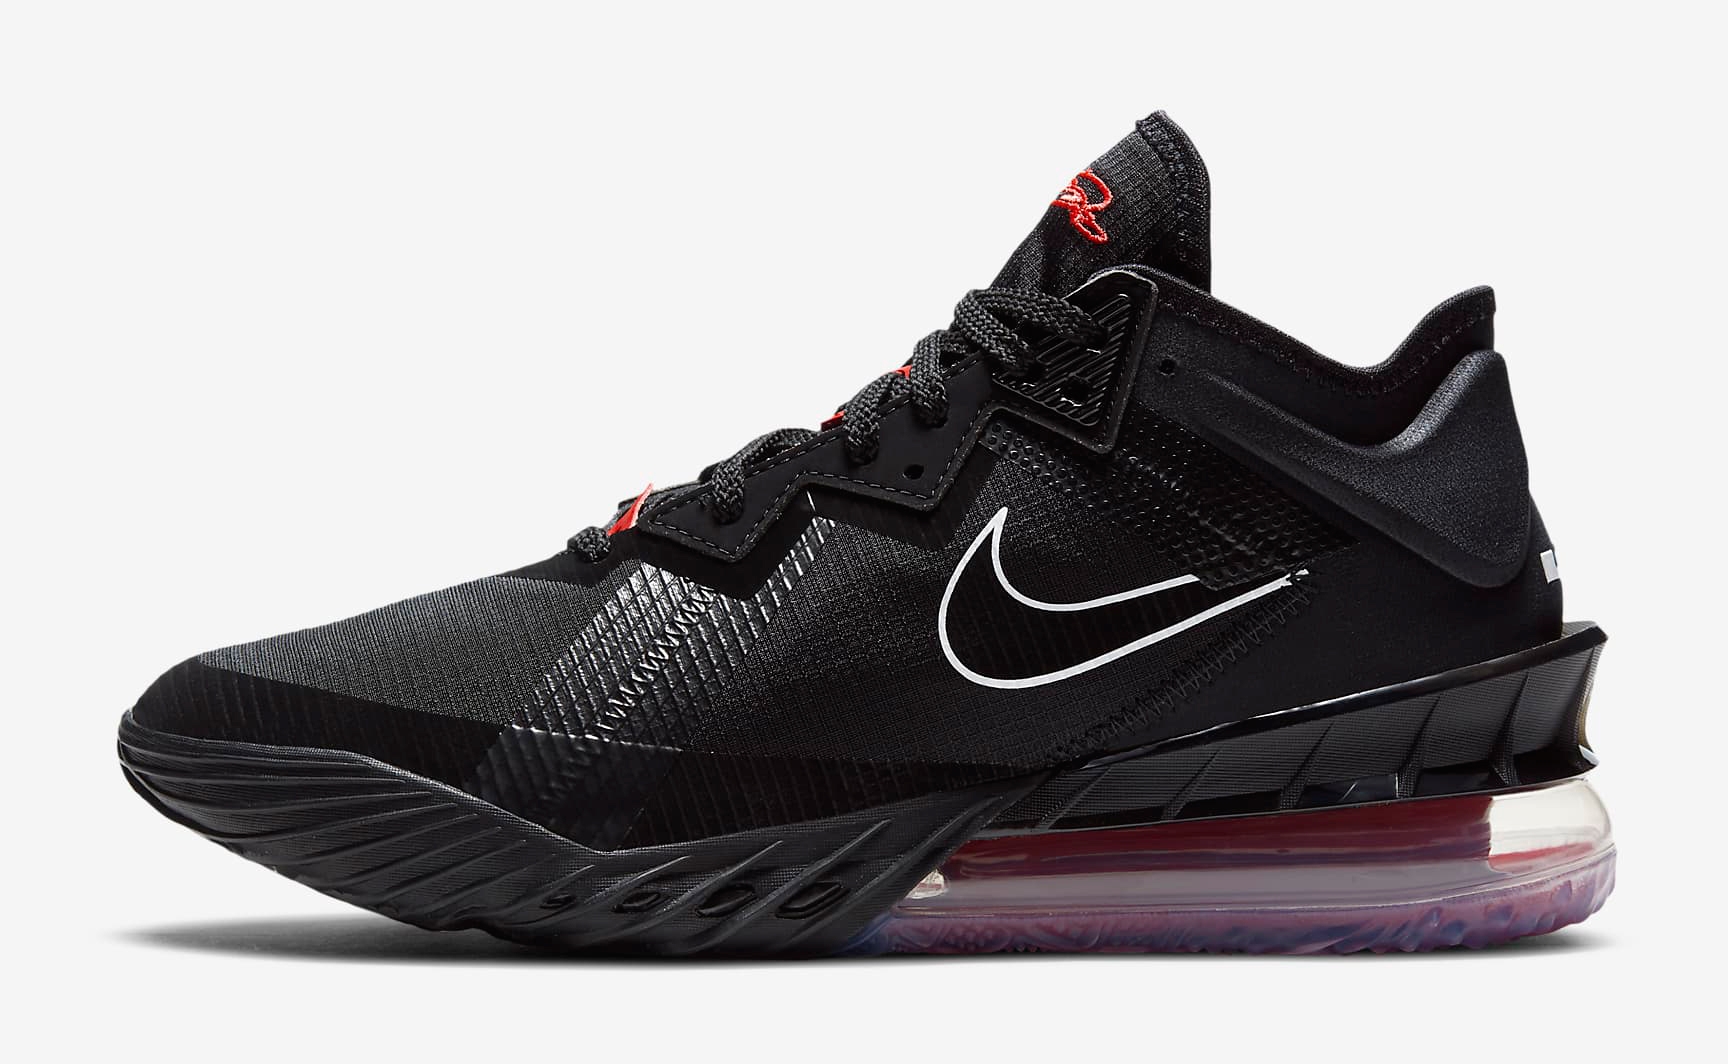 nike-lebron-18-low-bred-black-university-red-release-date-price-where-to-buy-2